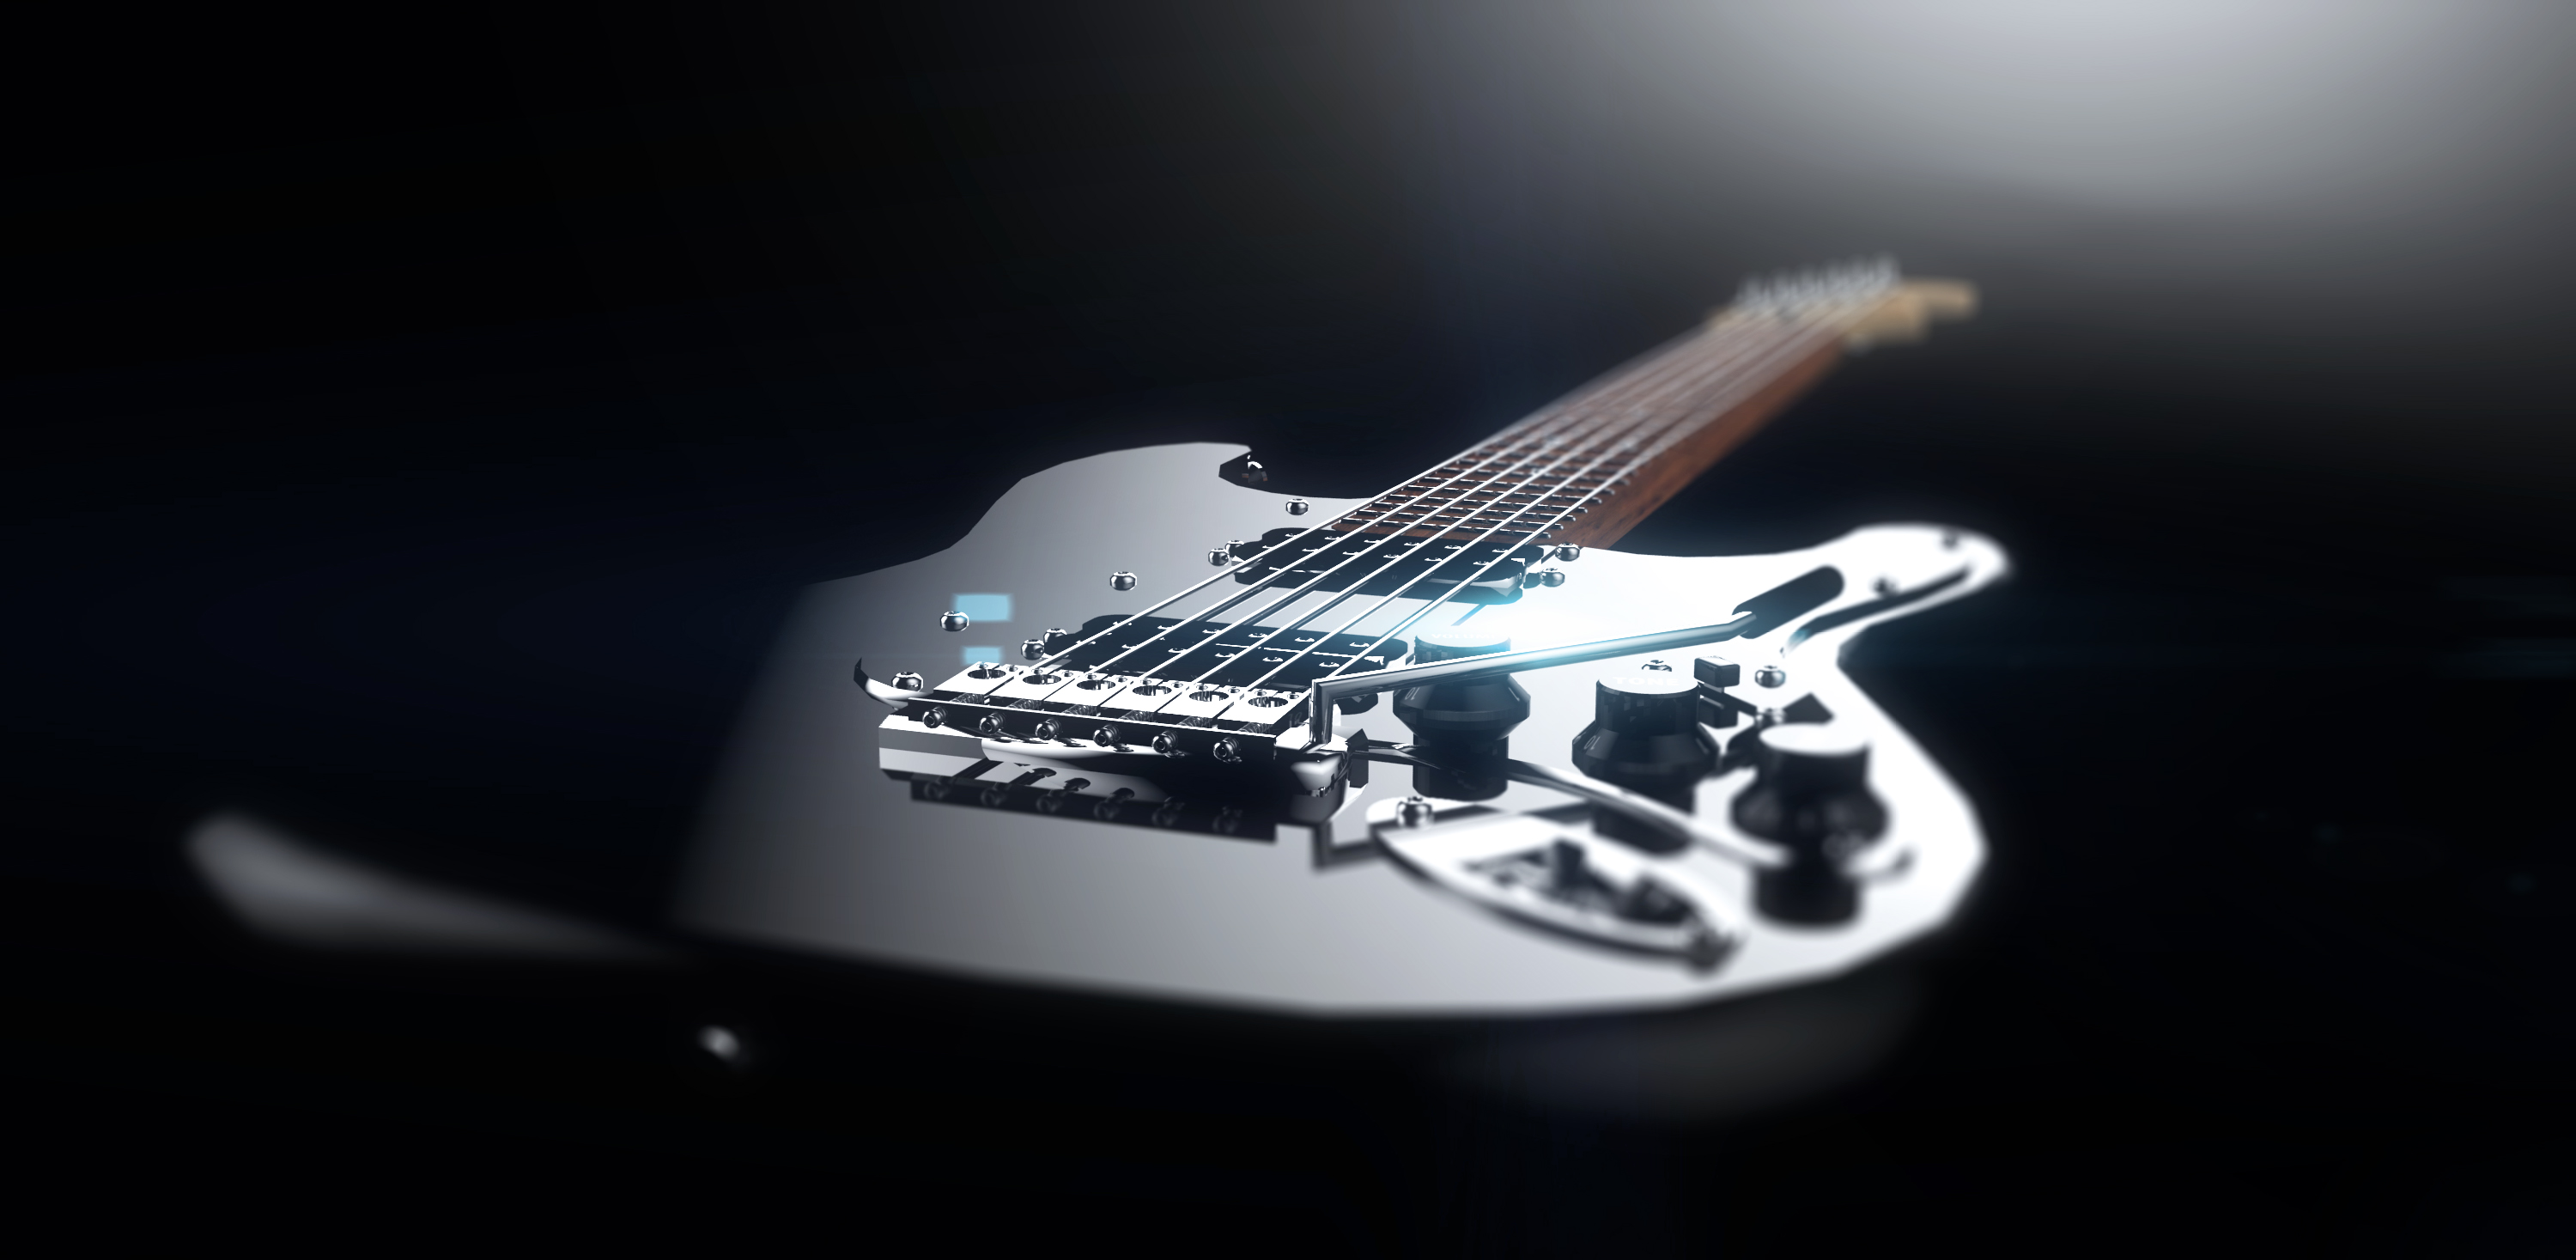 fender stratocaster01 by reactoranimations on deviantart